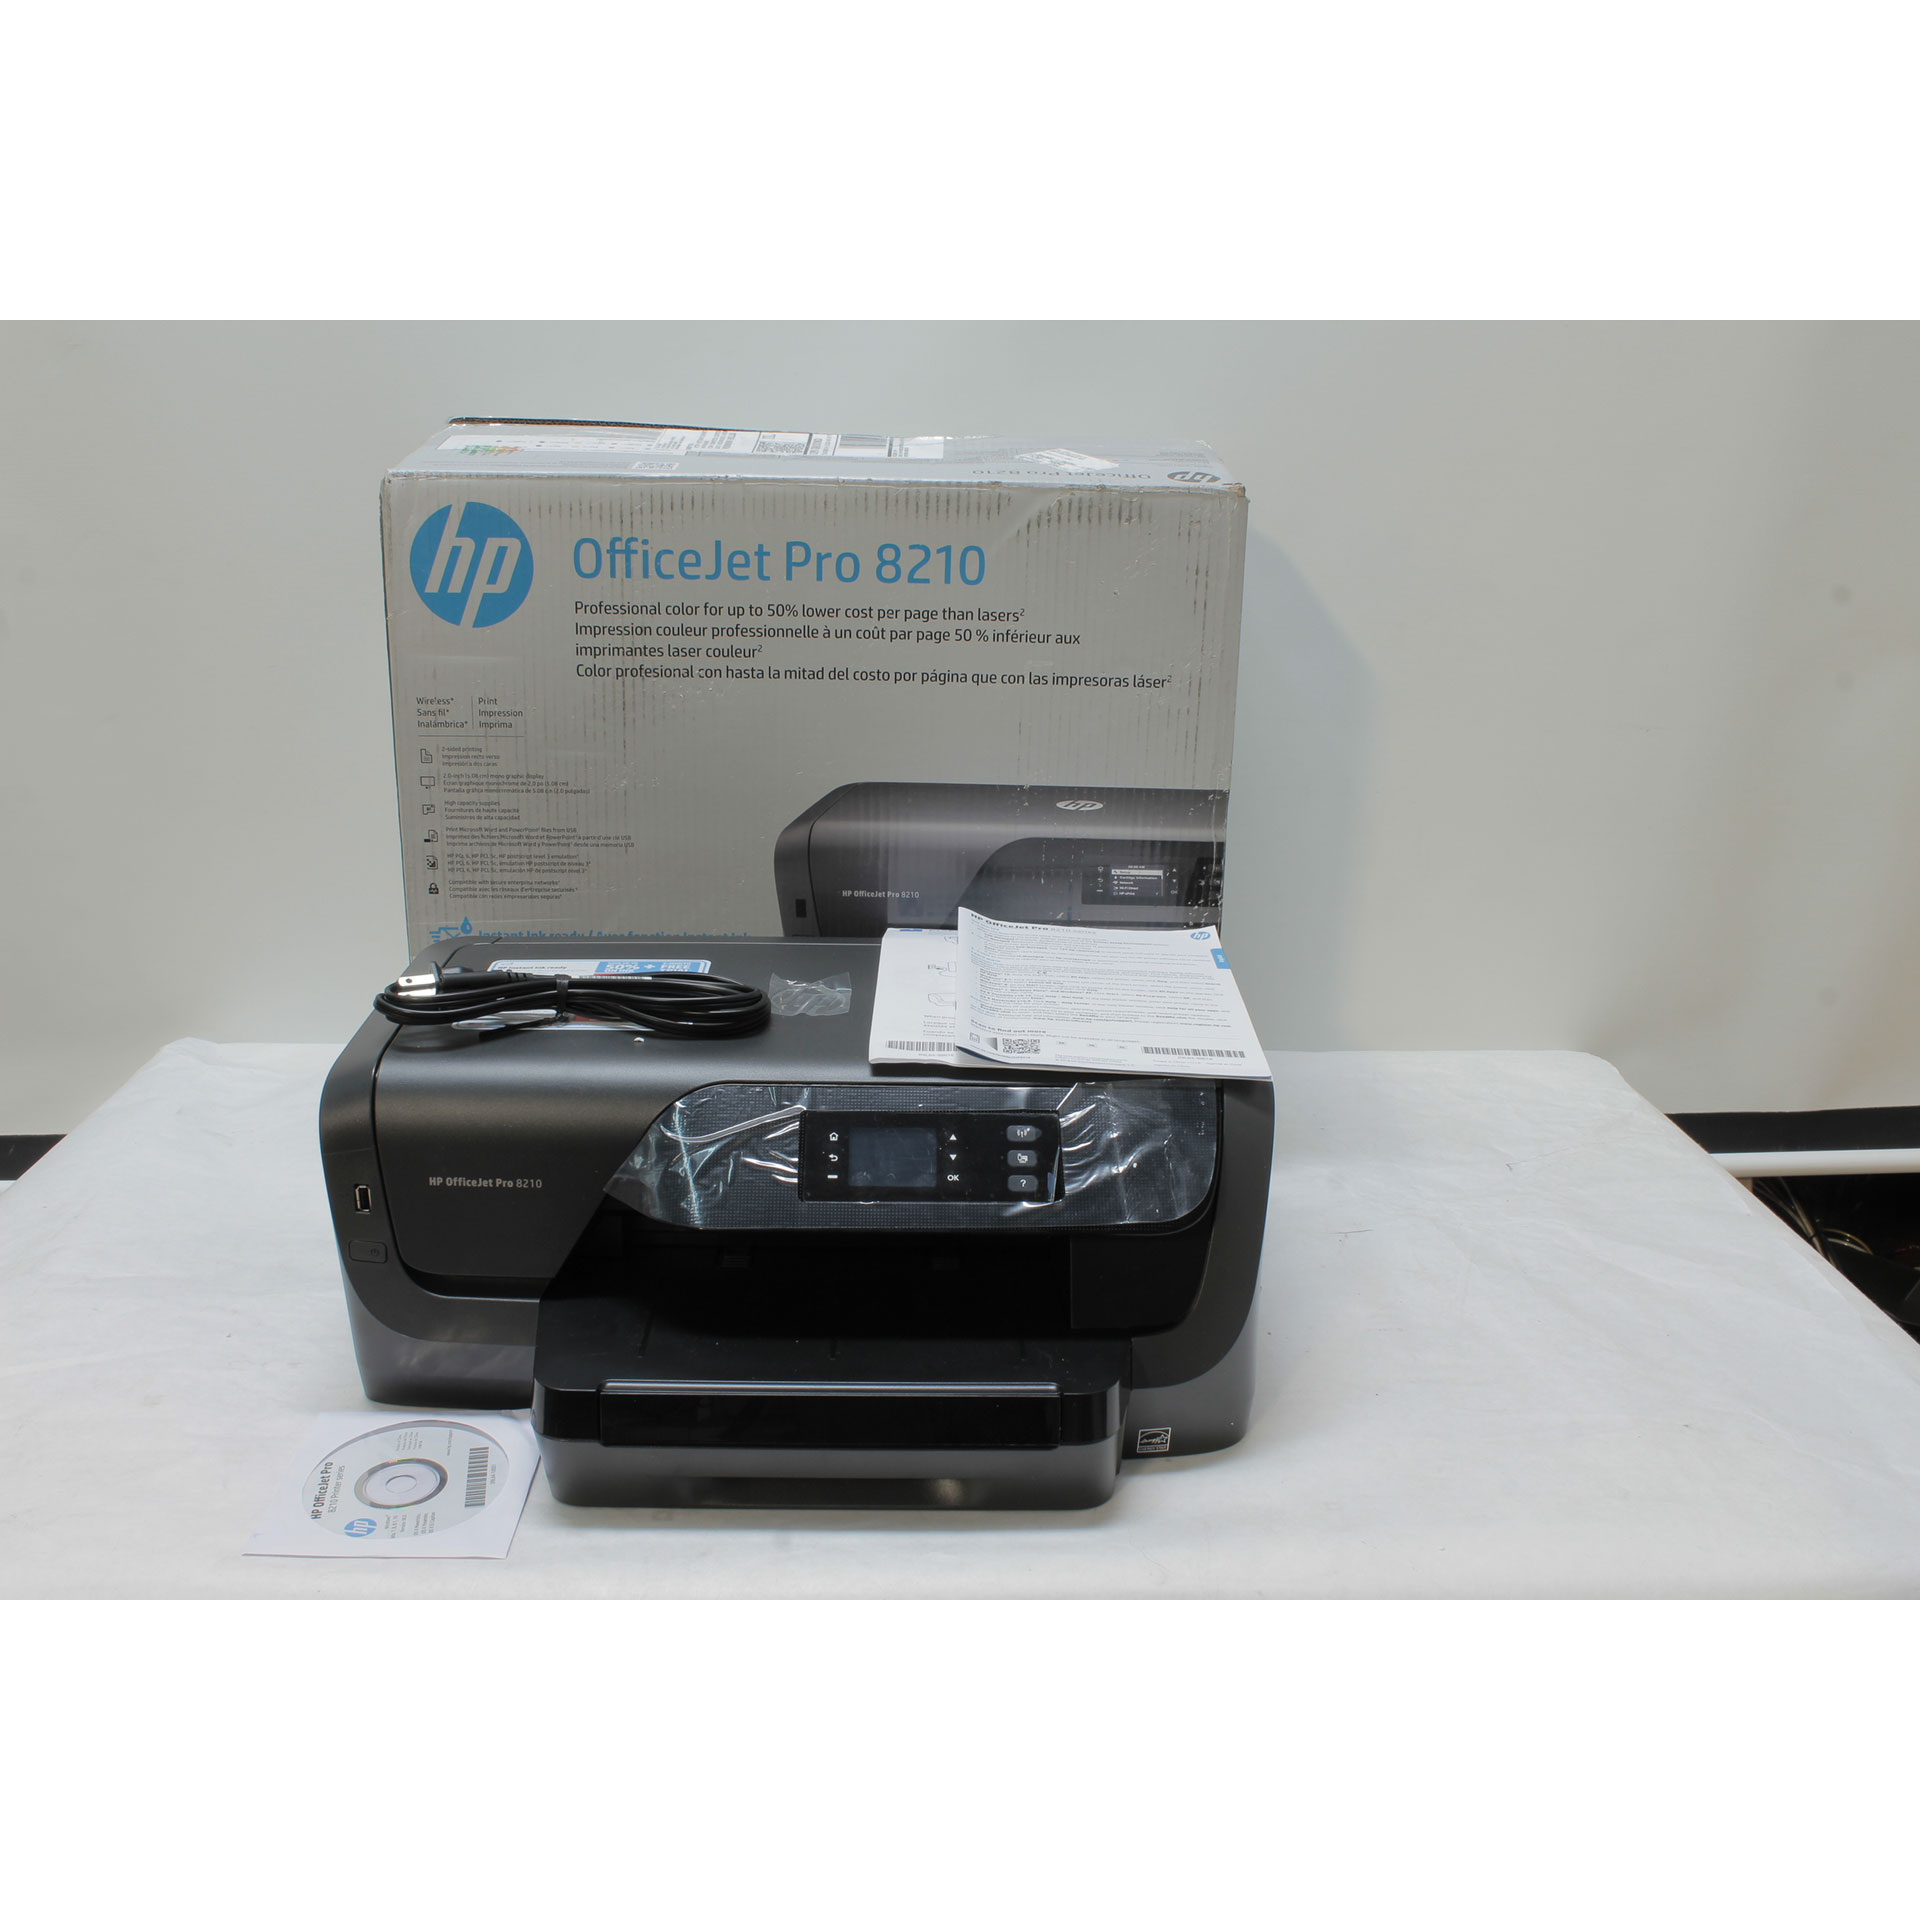 HP OfficeJet Pro 8210 A4 Inkjet Color Duplex Printer D9L64A